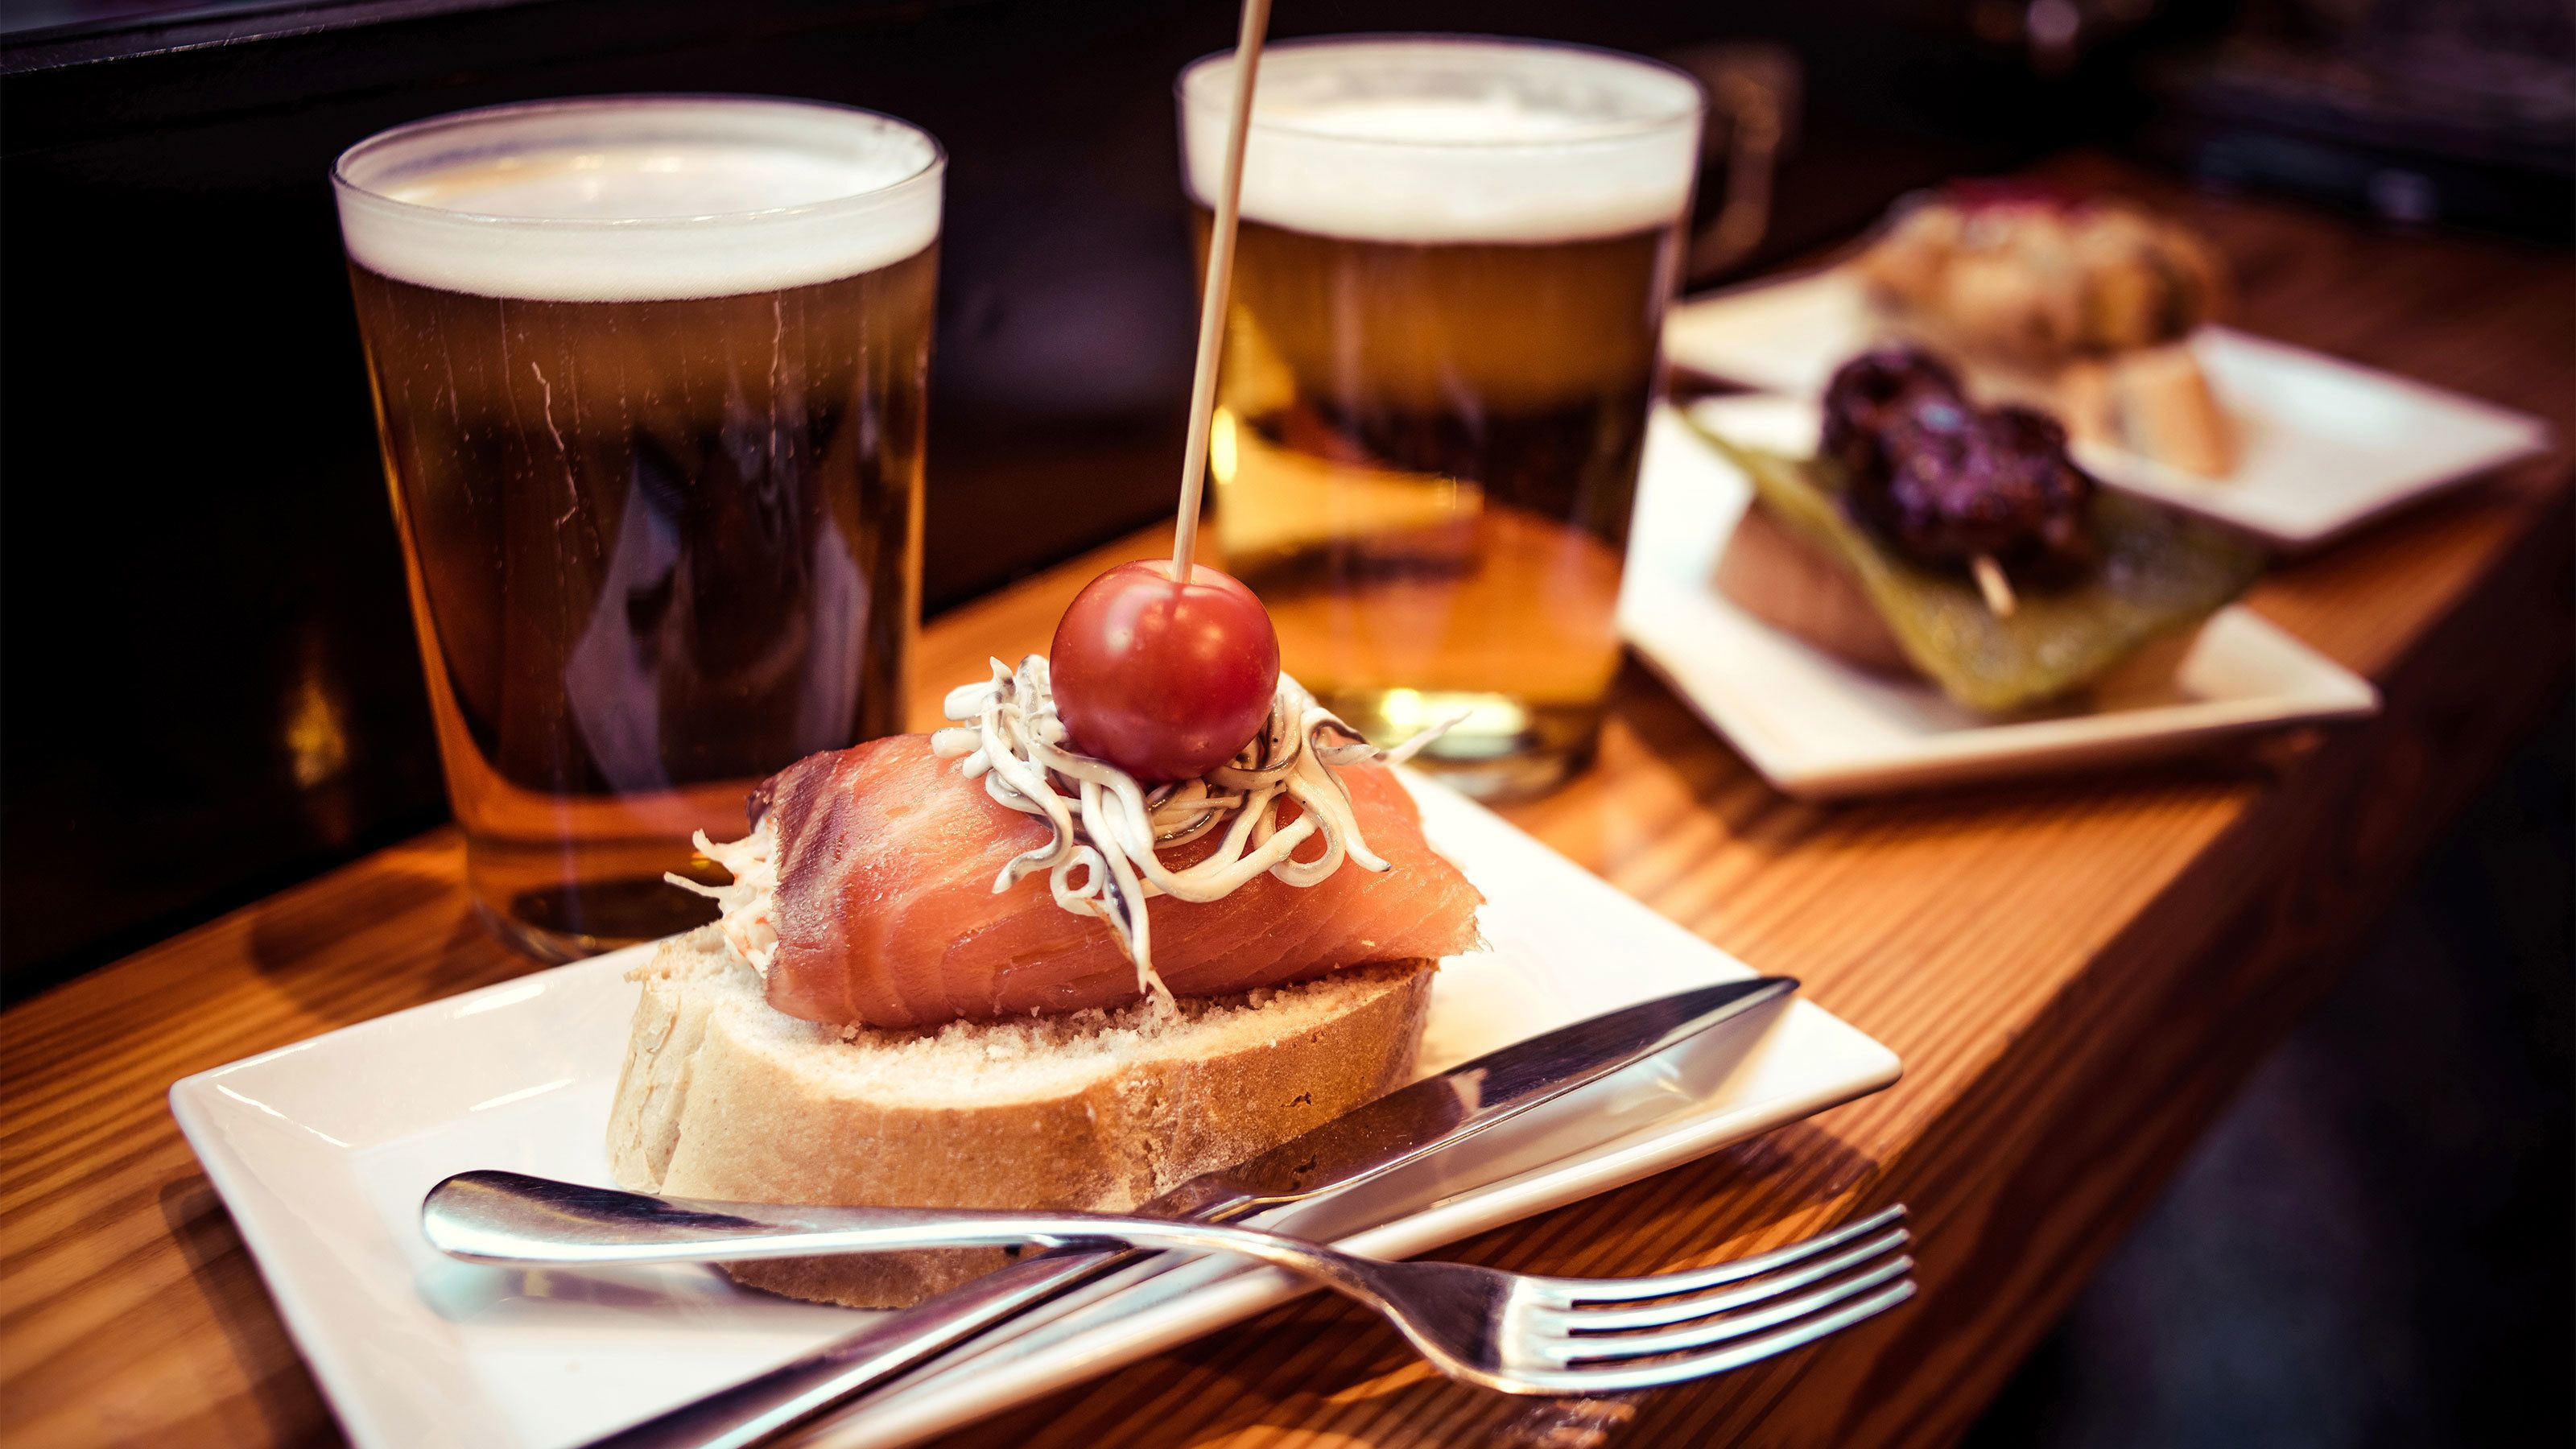 plate of smoked salmon and beer at food tour in Barcelona